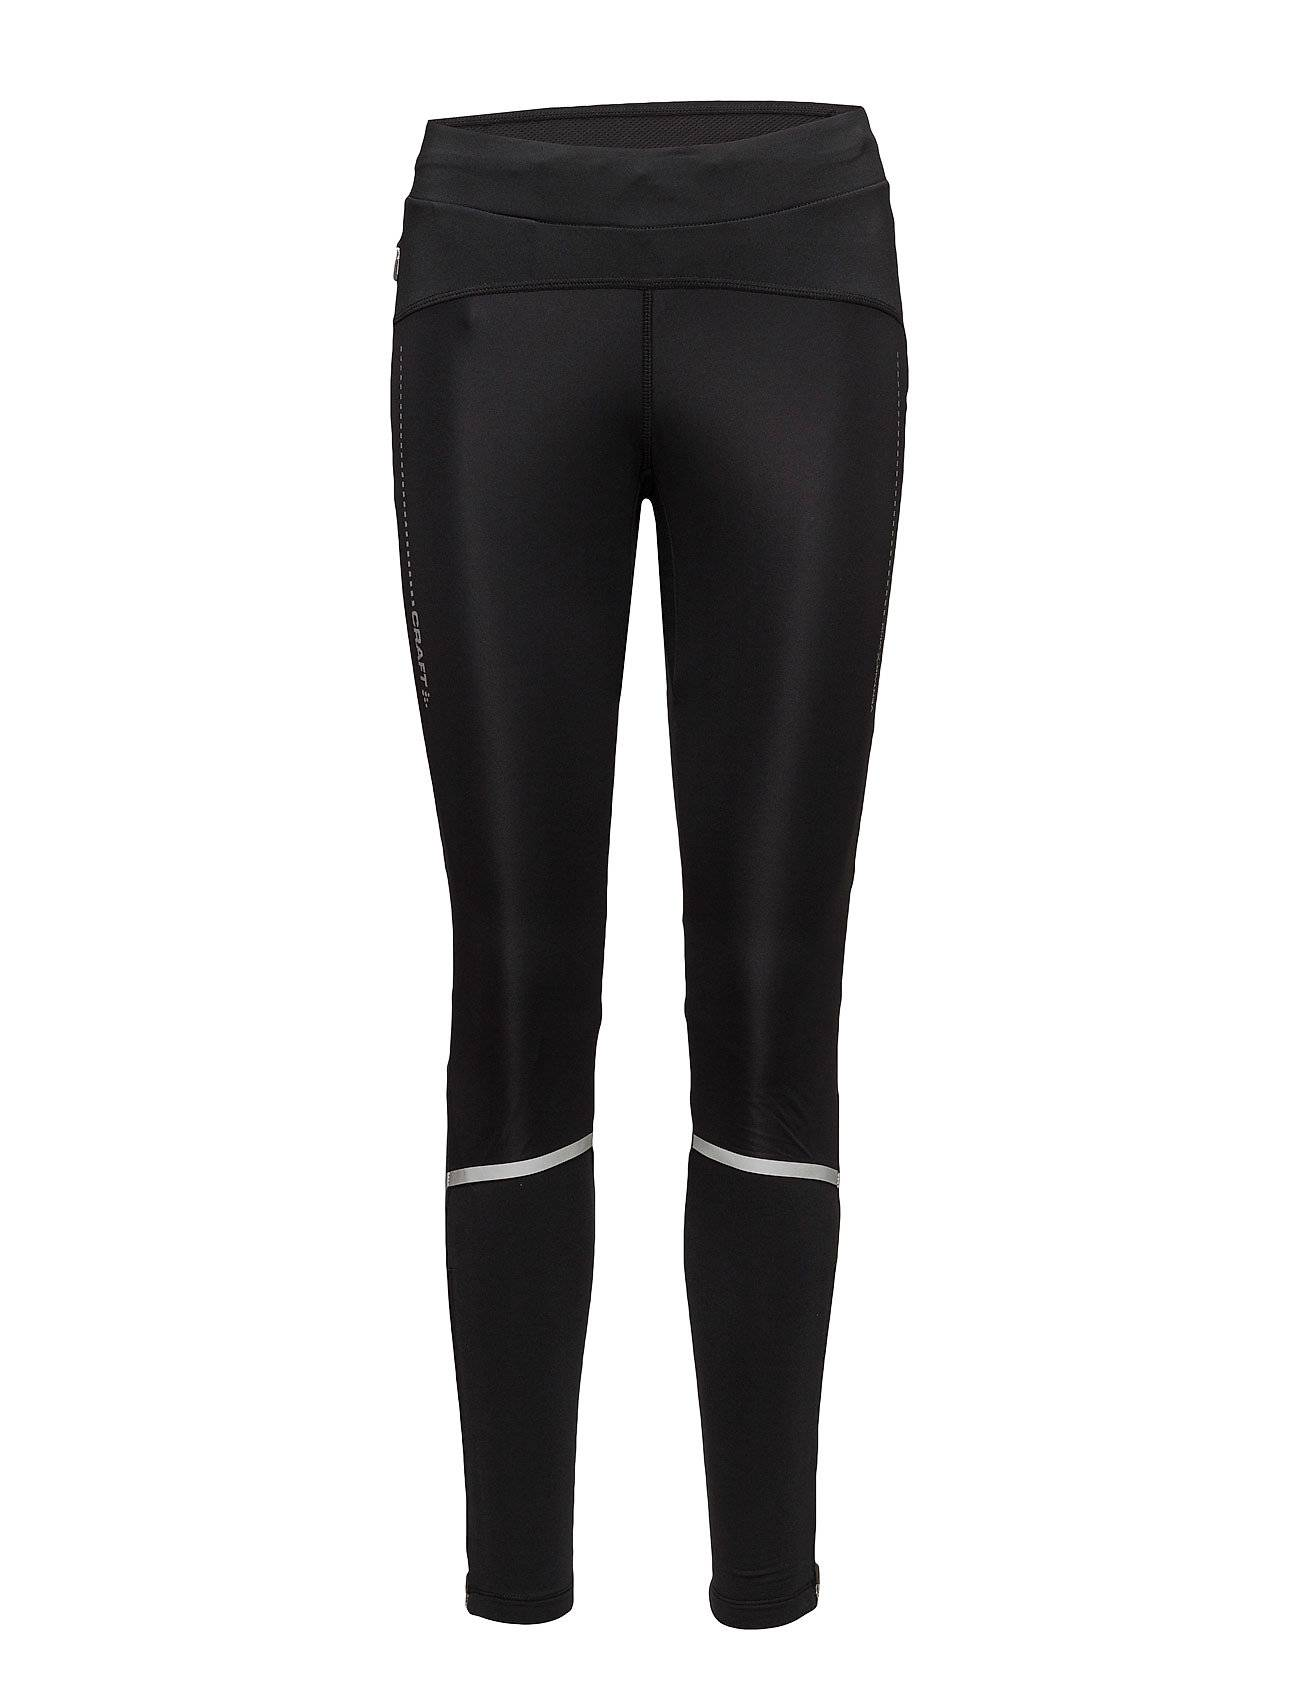 Image of Craft Essential Winter Tights W Running/training Tights Musta Craft